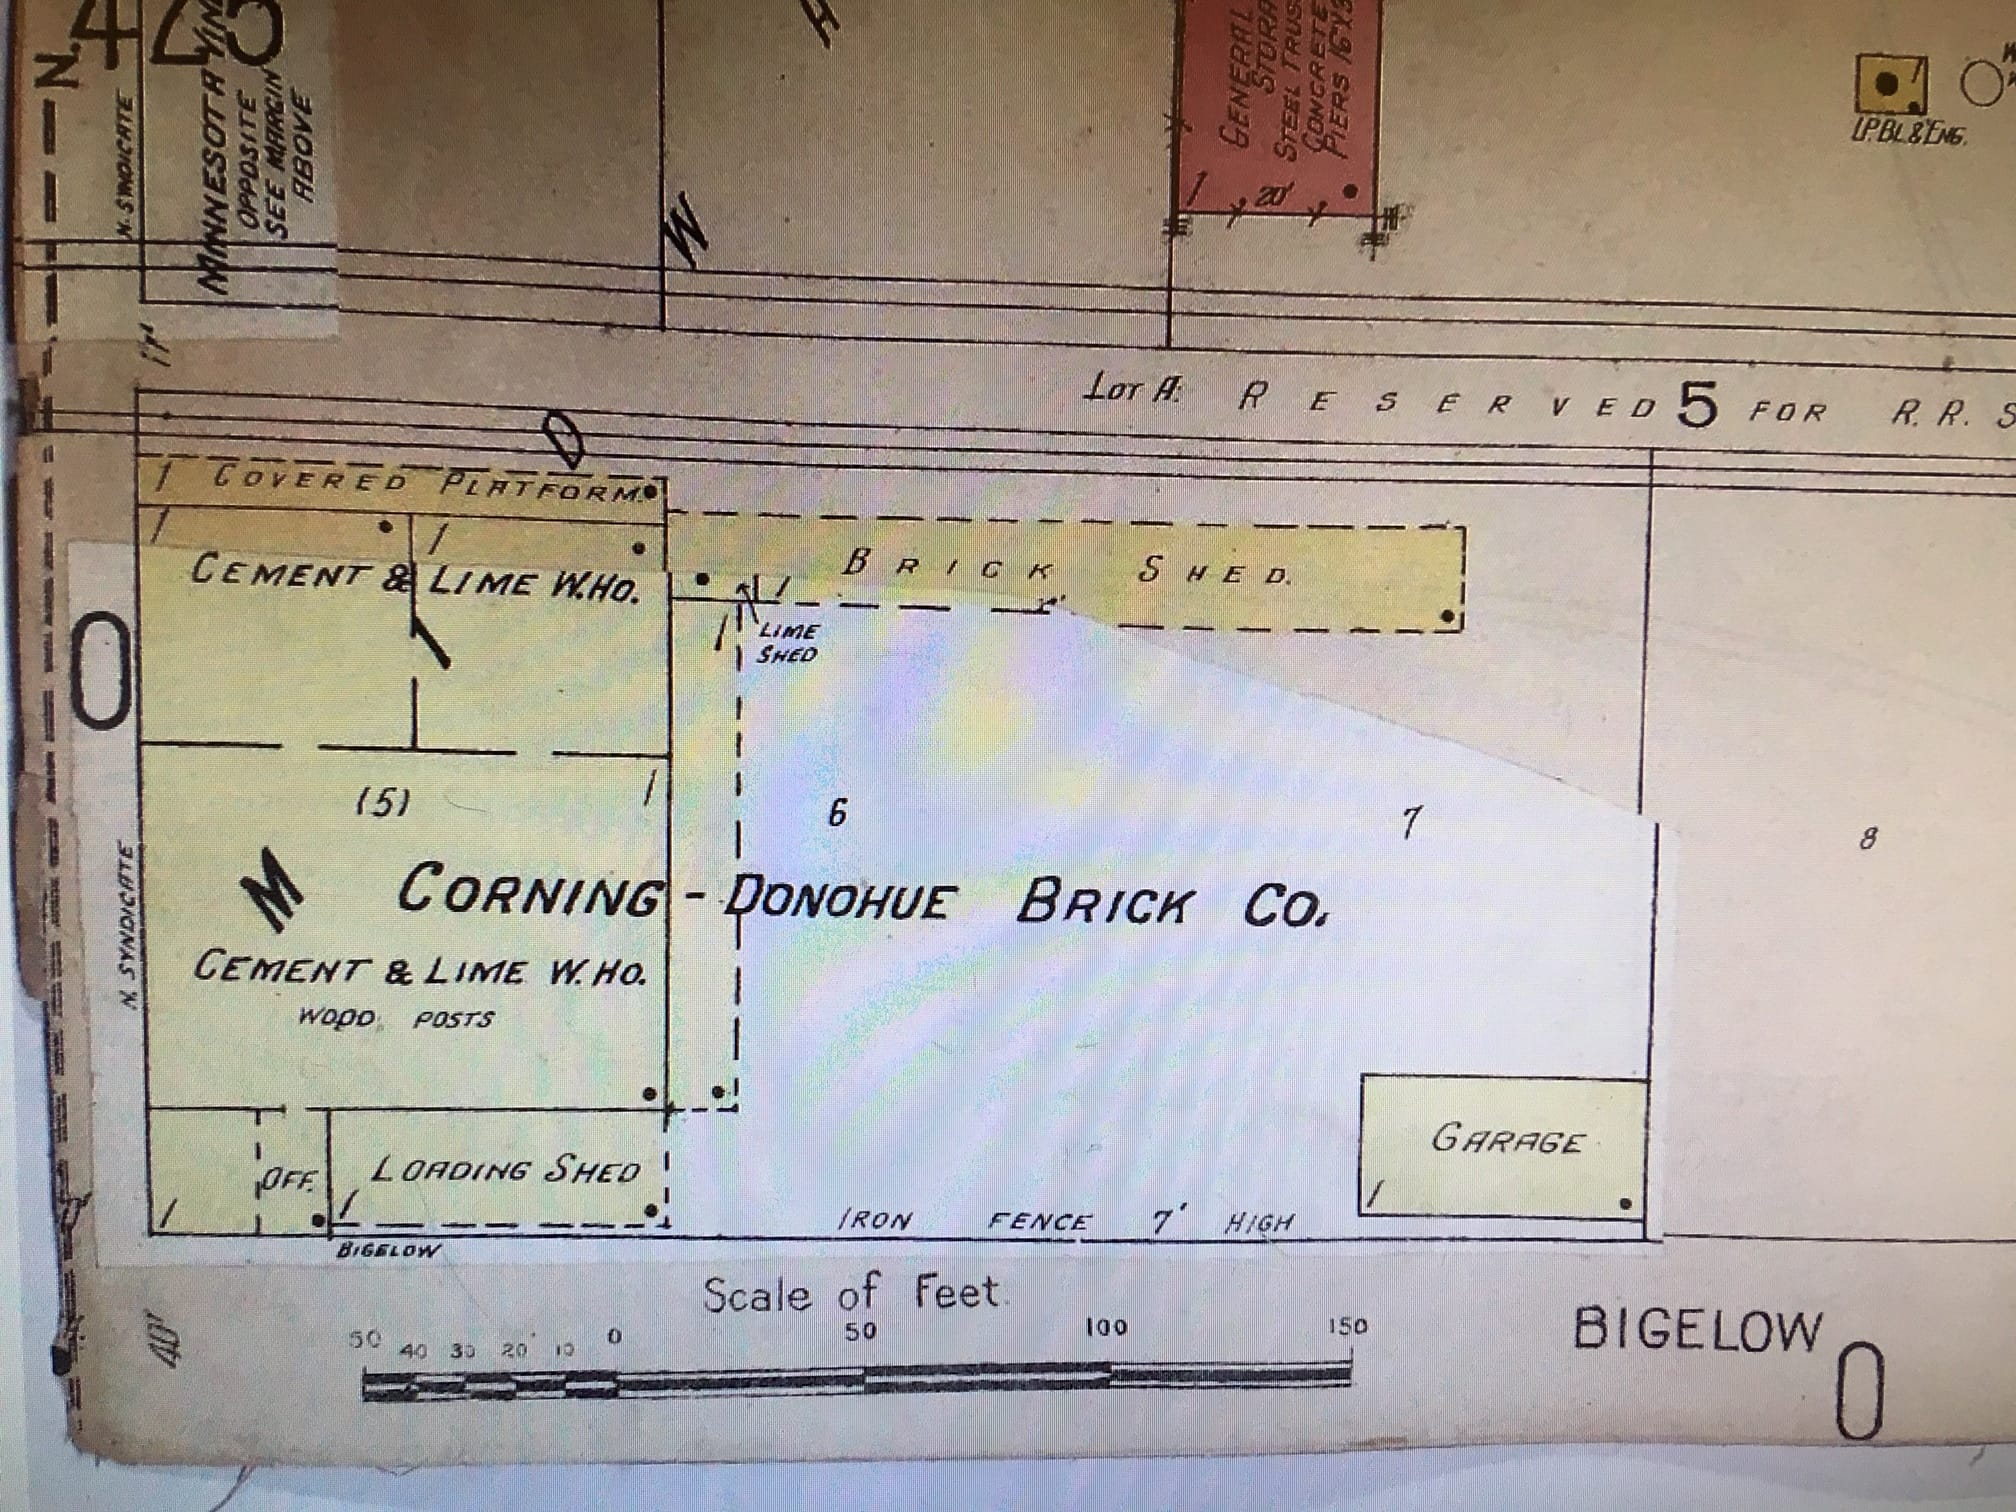 The Corning-Donohue Brick Company in the 1922 plat book. Corning-Donohue expanded north toward Bohn years later.